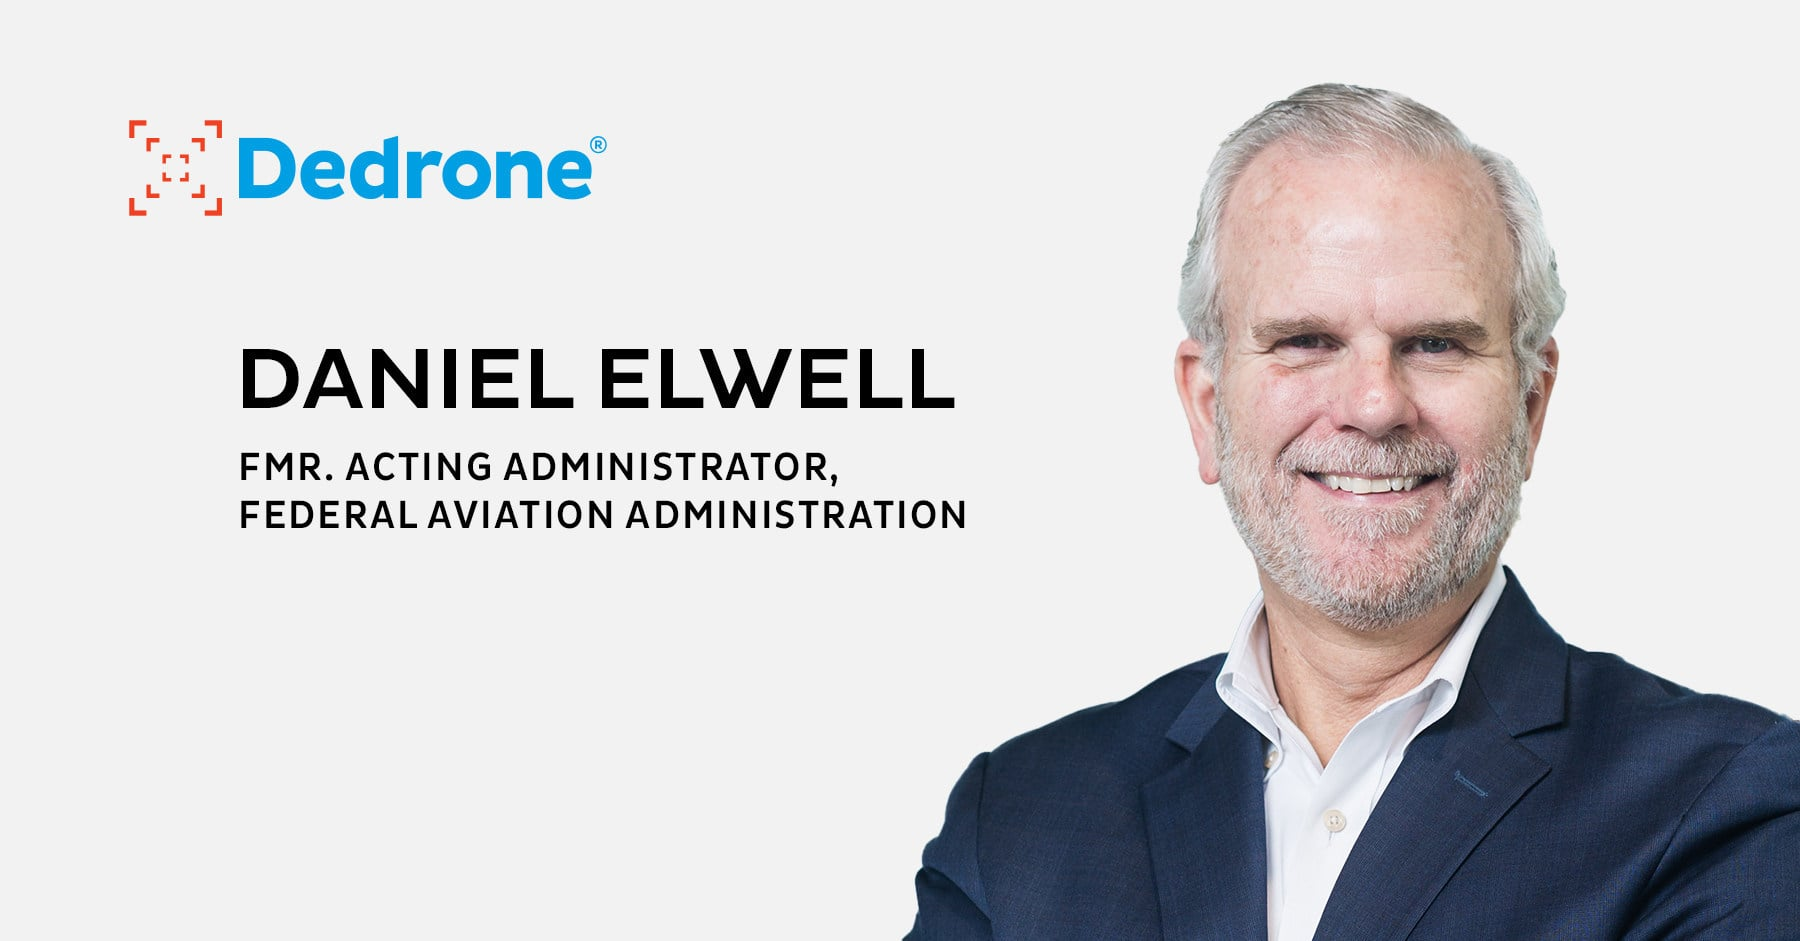 Dedrone Appoints Former FAA's Daniel Elwell to Advisory Board